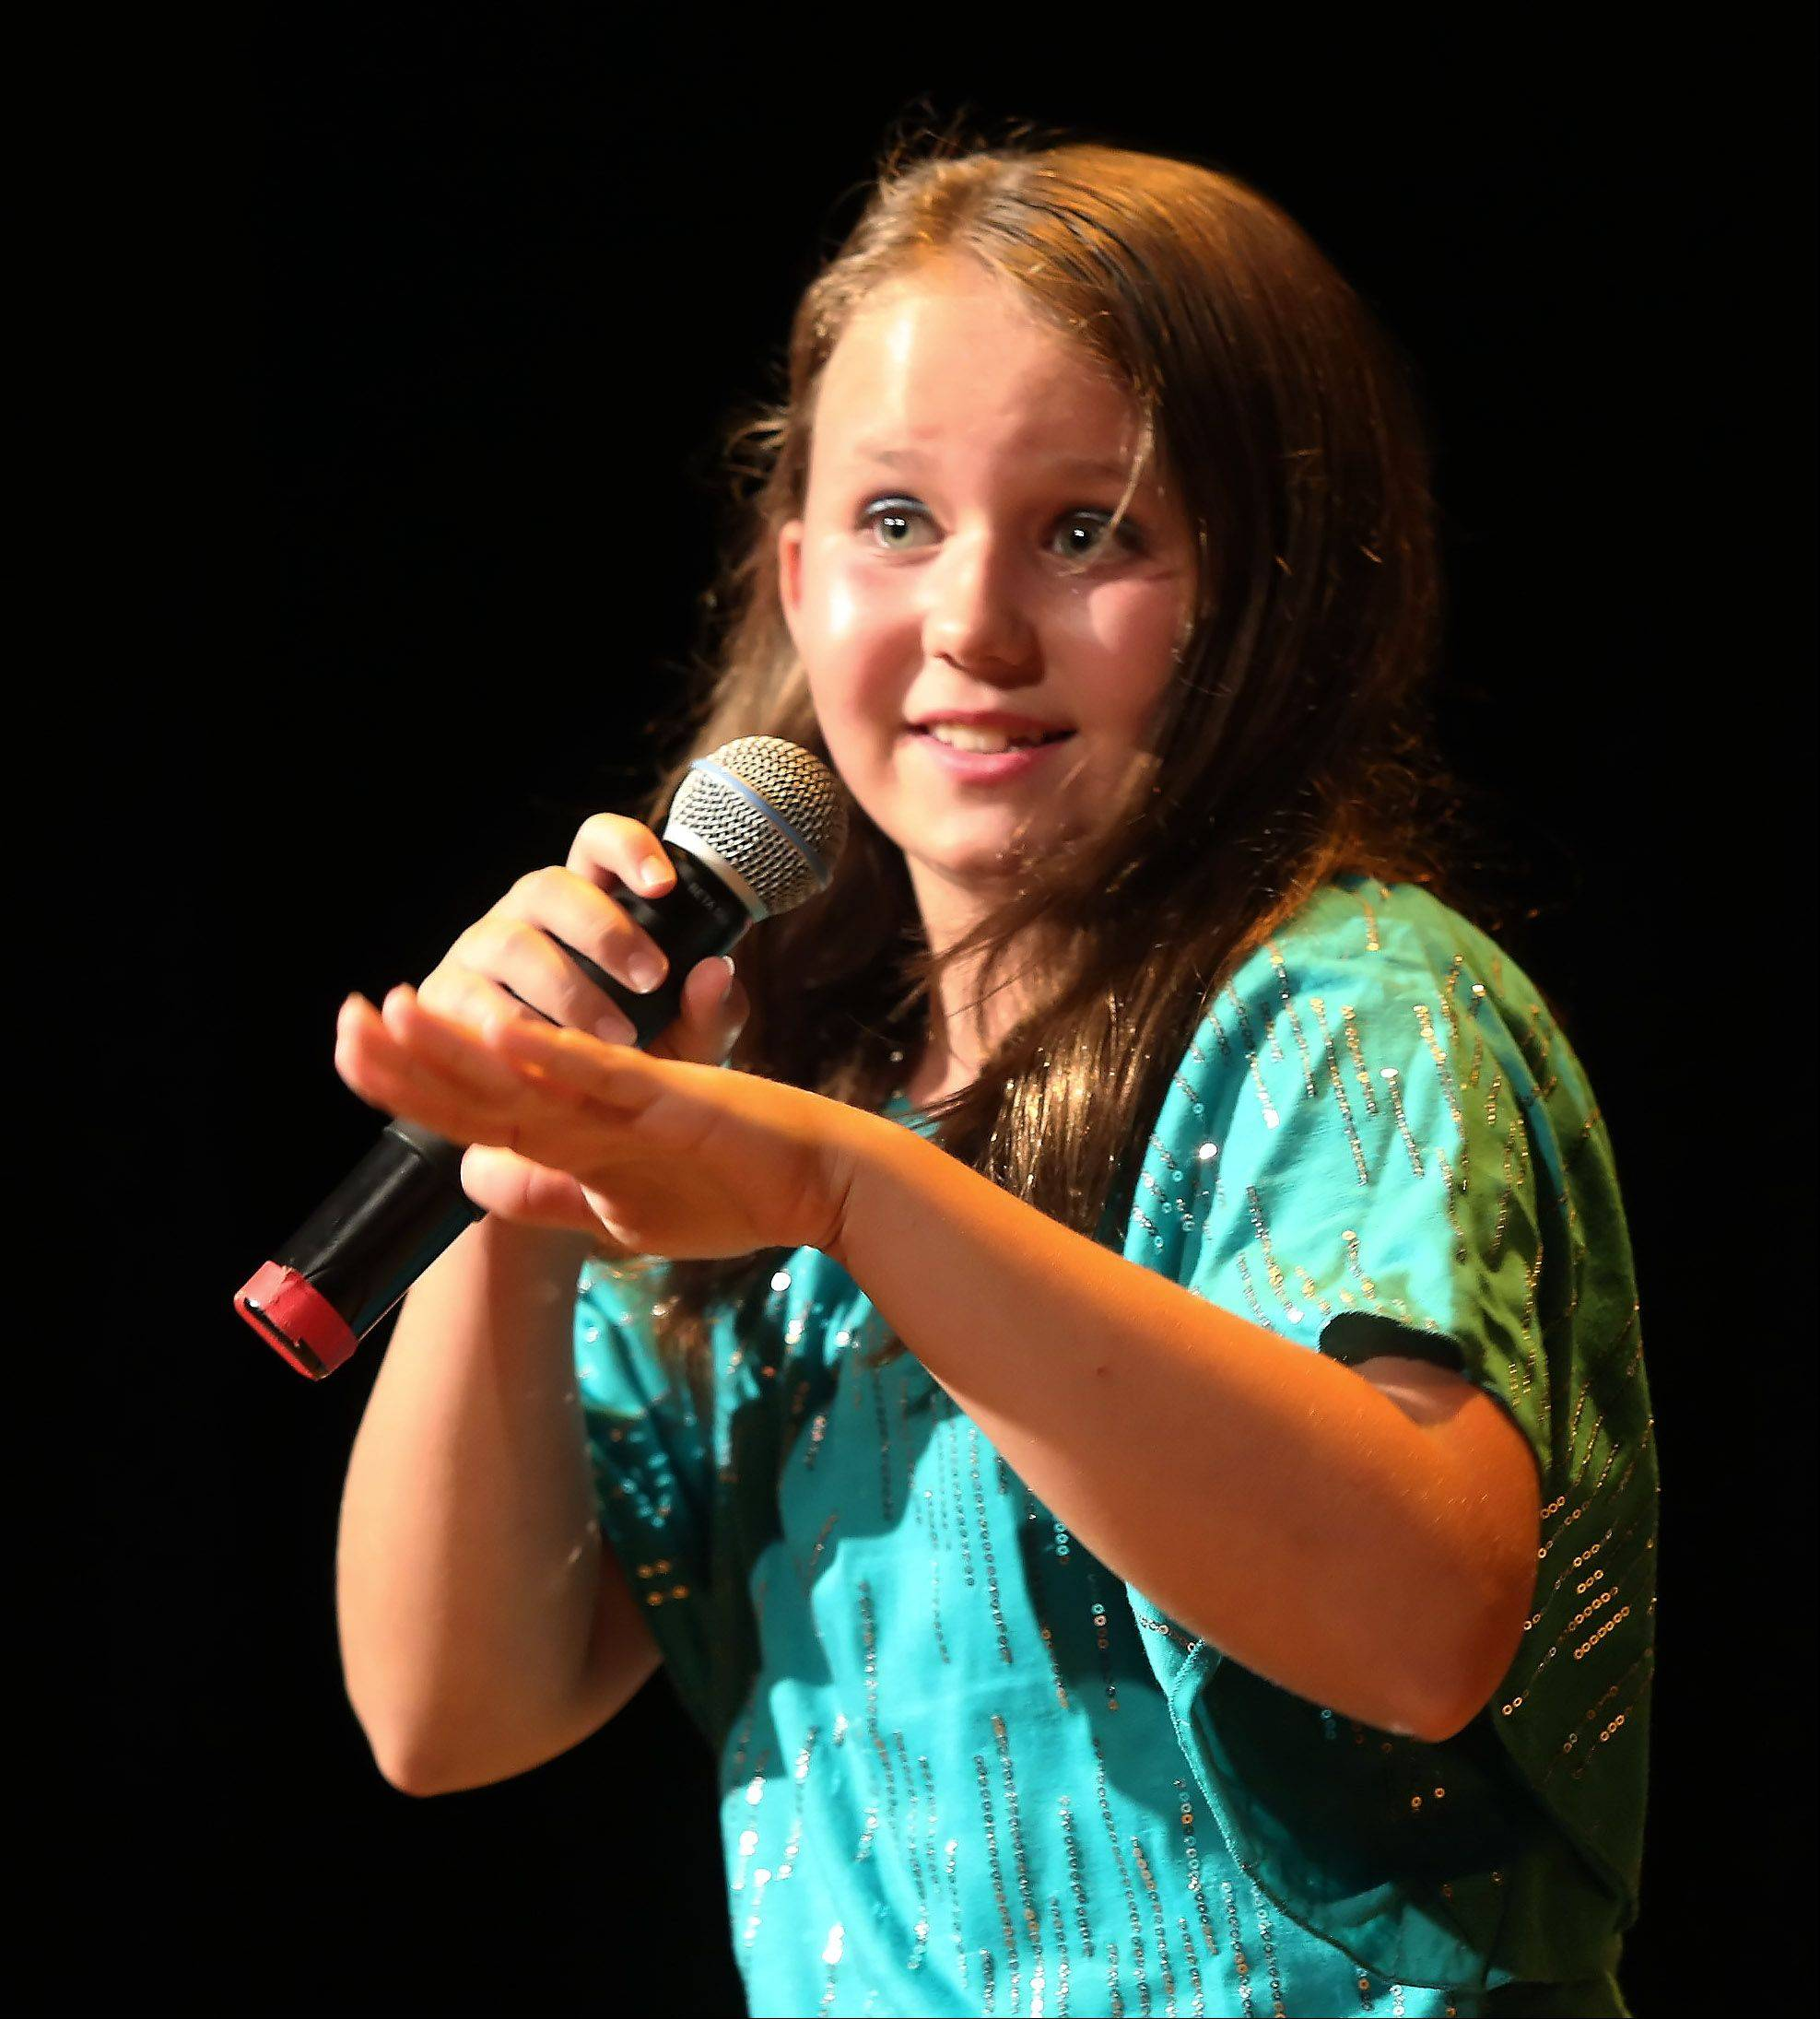 Mary Hilbrink, 10, of Fox River Grove sings Sunday during the second round of performances by finalists of the Suburban Chicago's Got Talent competition at the Metropolis Performing Arts Centre in Arlington Heights. The summer long talent contest is presented by the Daily Herald and sponsored by the Arlington Heights Chamber of Commerce.